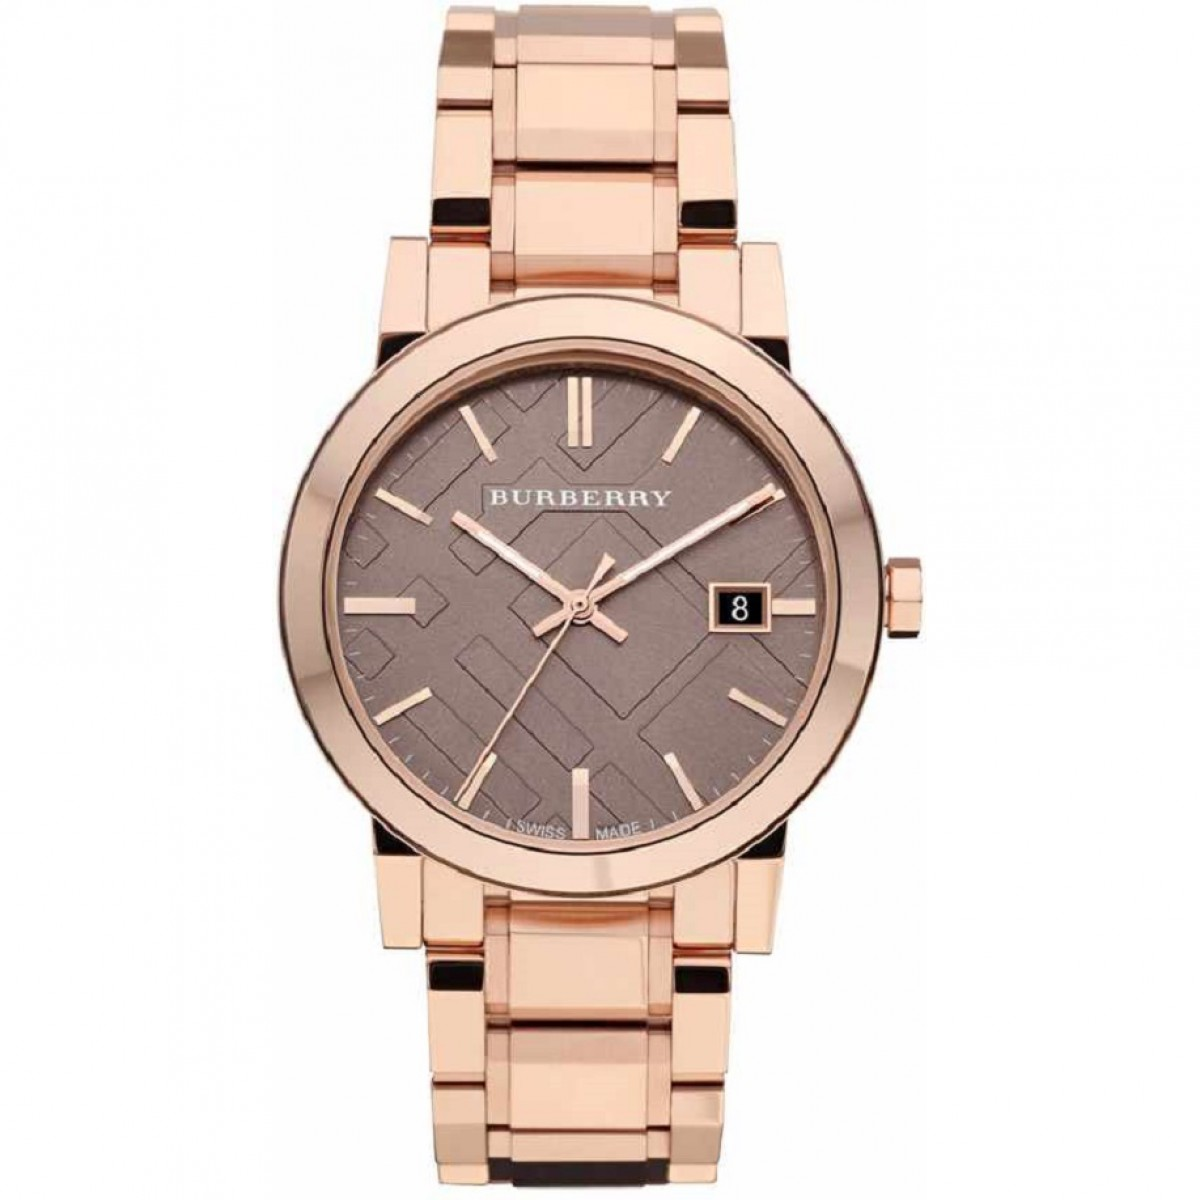 Unisex Burberry Brown Watch BU9005